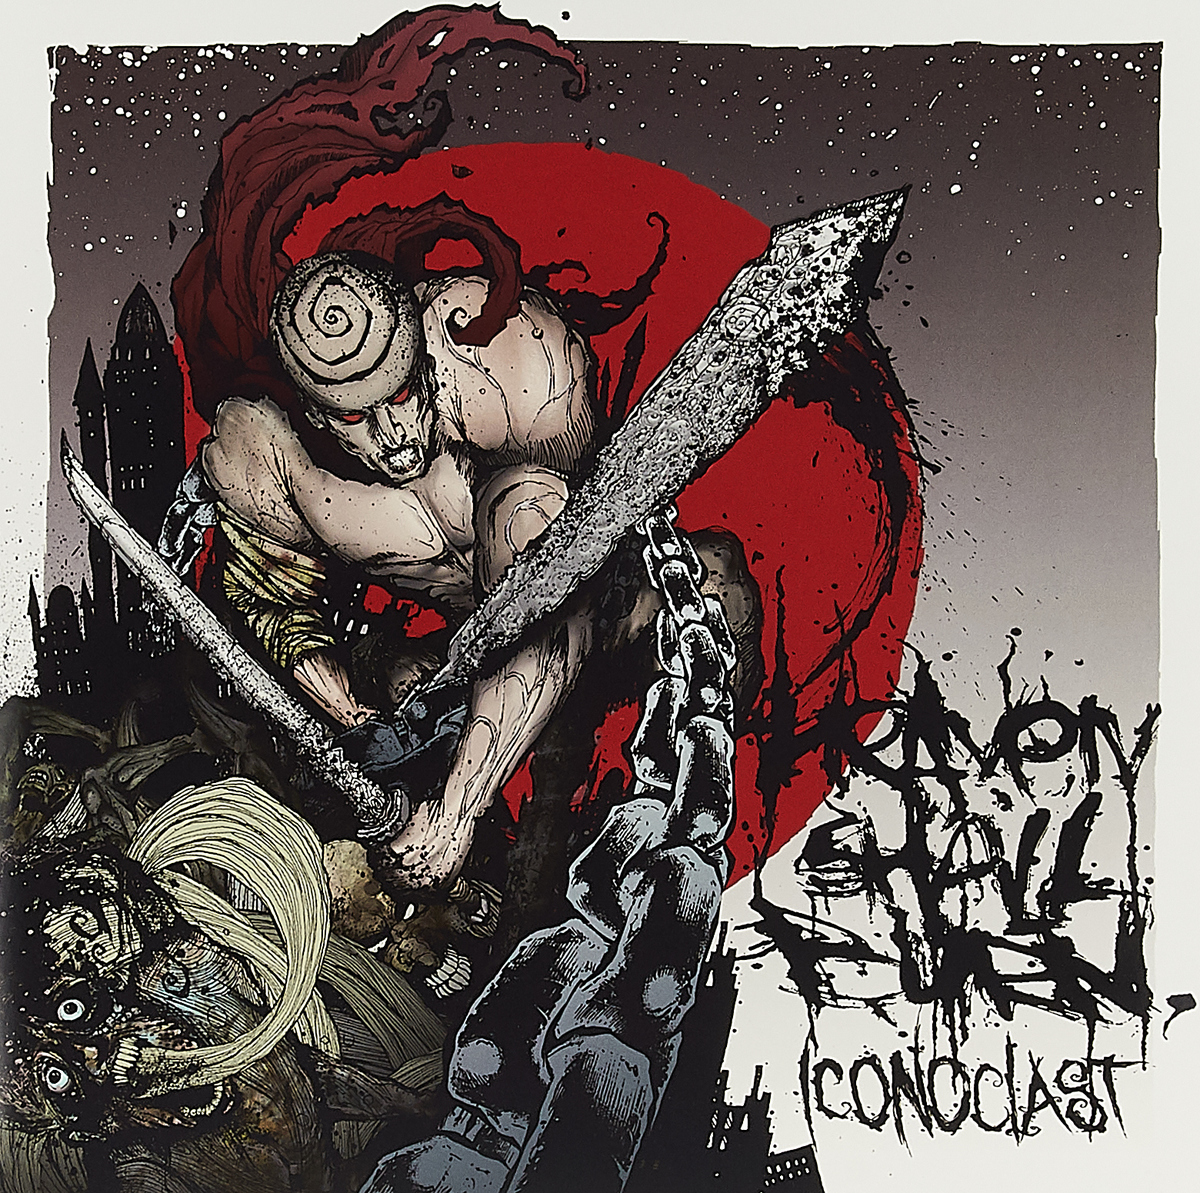 Heaven Shall Burn Heaven Shall Burn. Iconoclast (Part One: The Final Resistance) (Re-issue 2018) (LP + CD) the final frontier cd